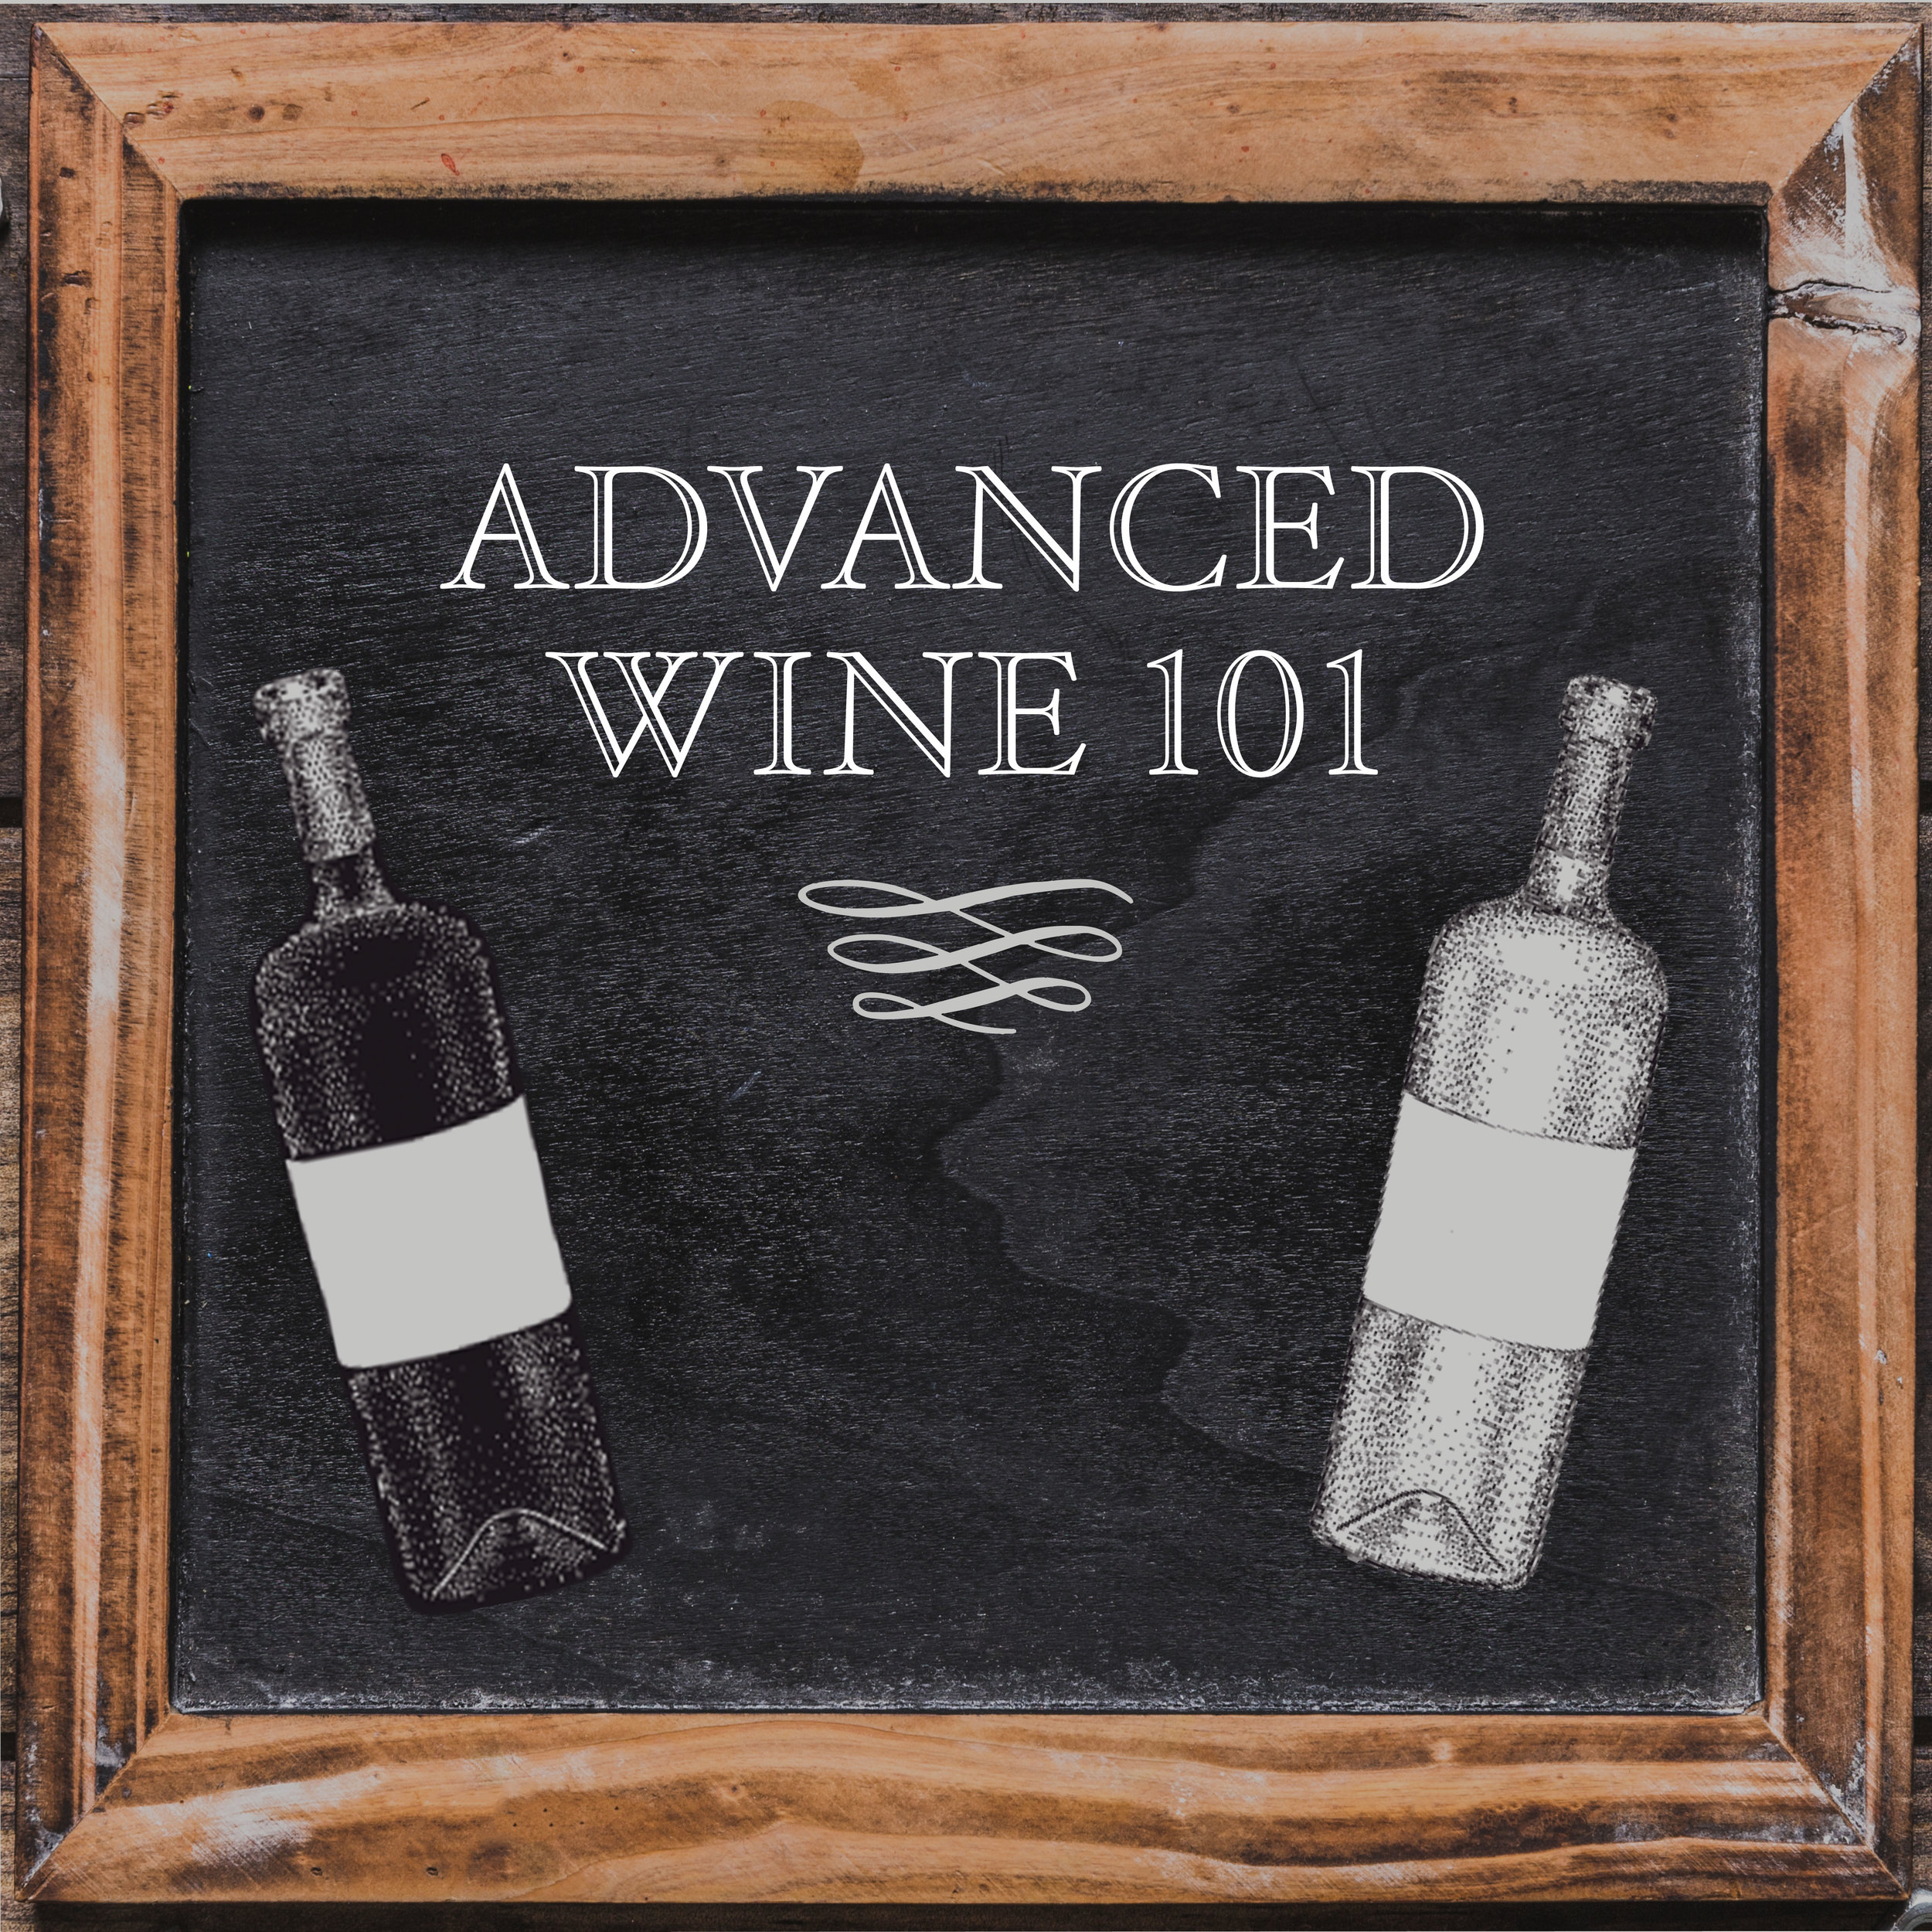 Advanced Wine 101 Downtown Los Angeles October 17, 2019 7:00 PM - 9:00 PM